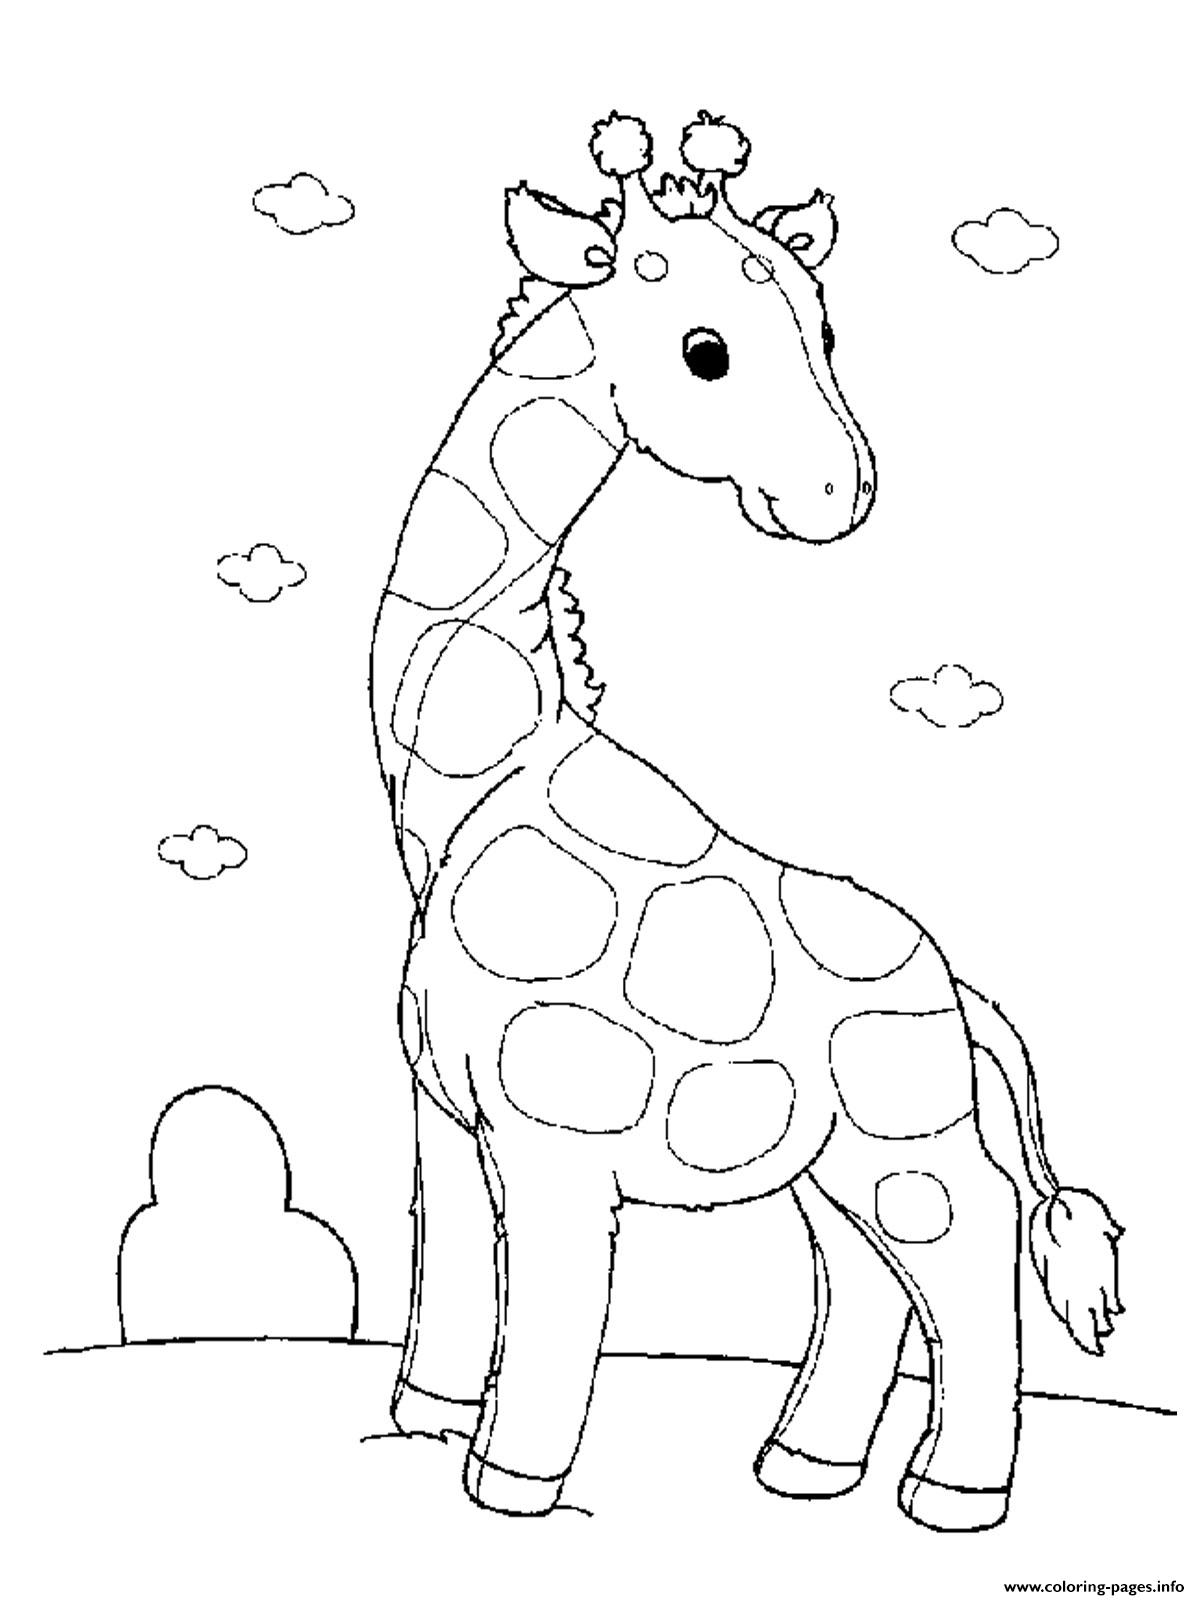 Baby Giraffe S For Girls Animals Printable13b0 coloring pages